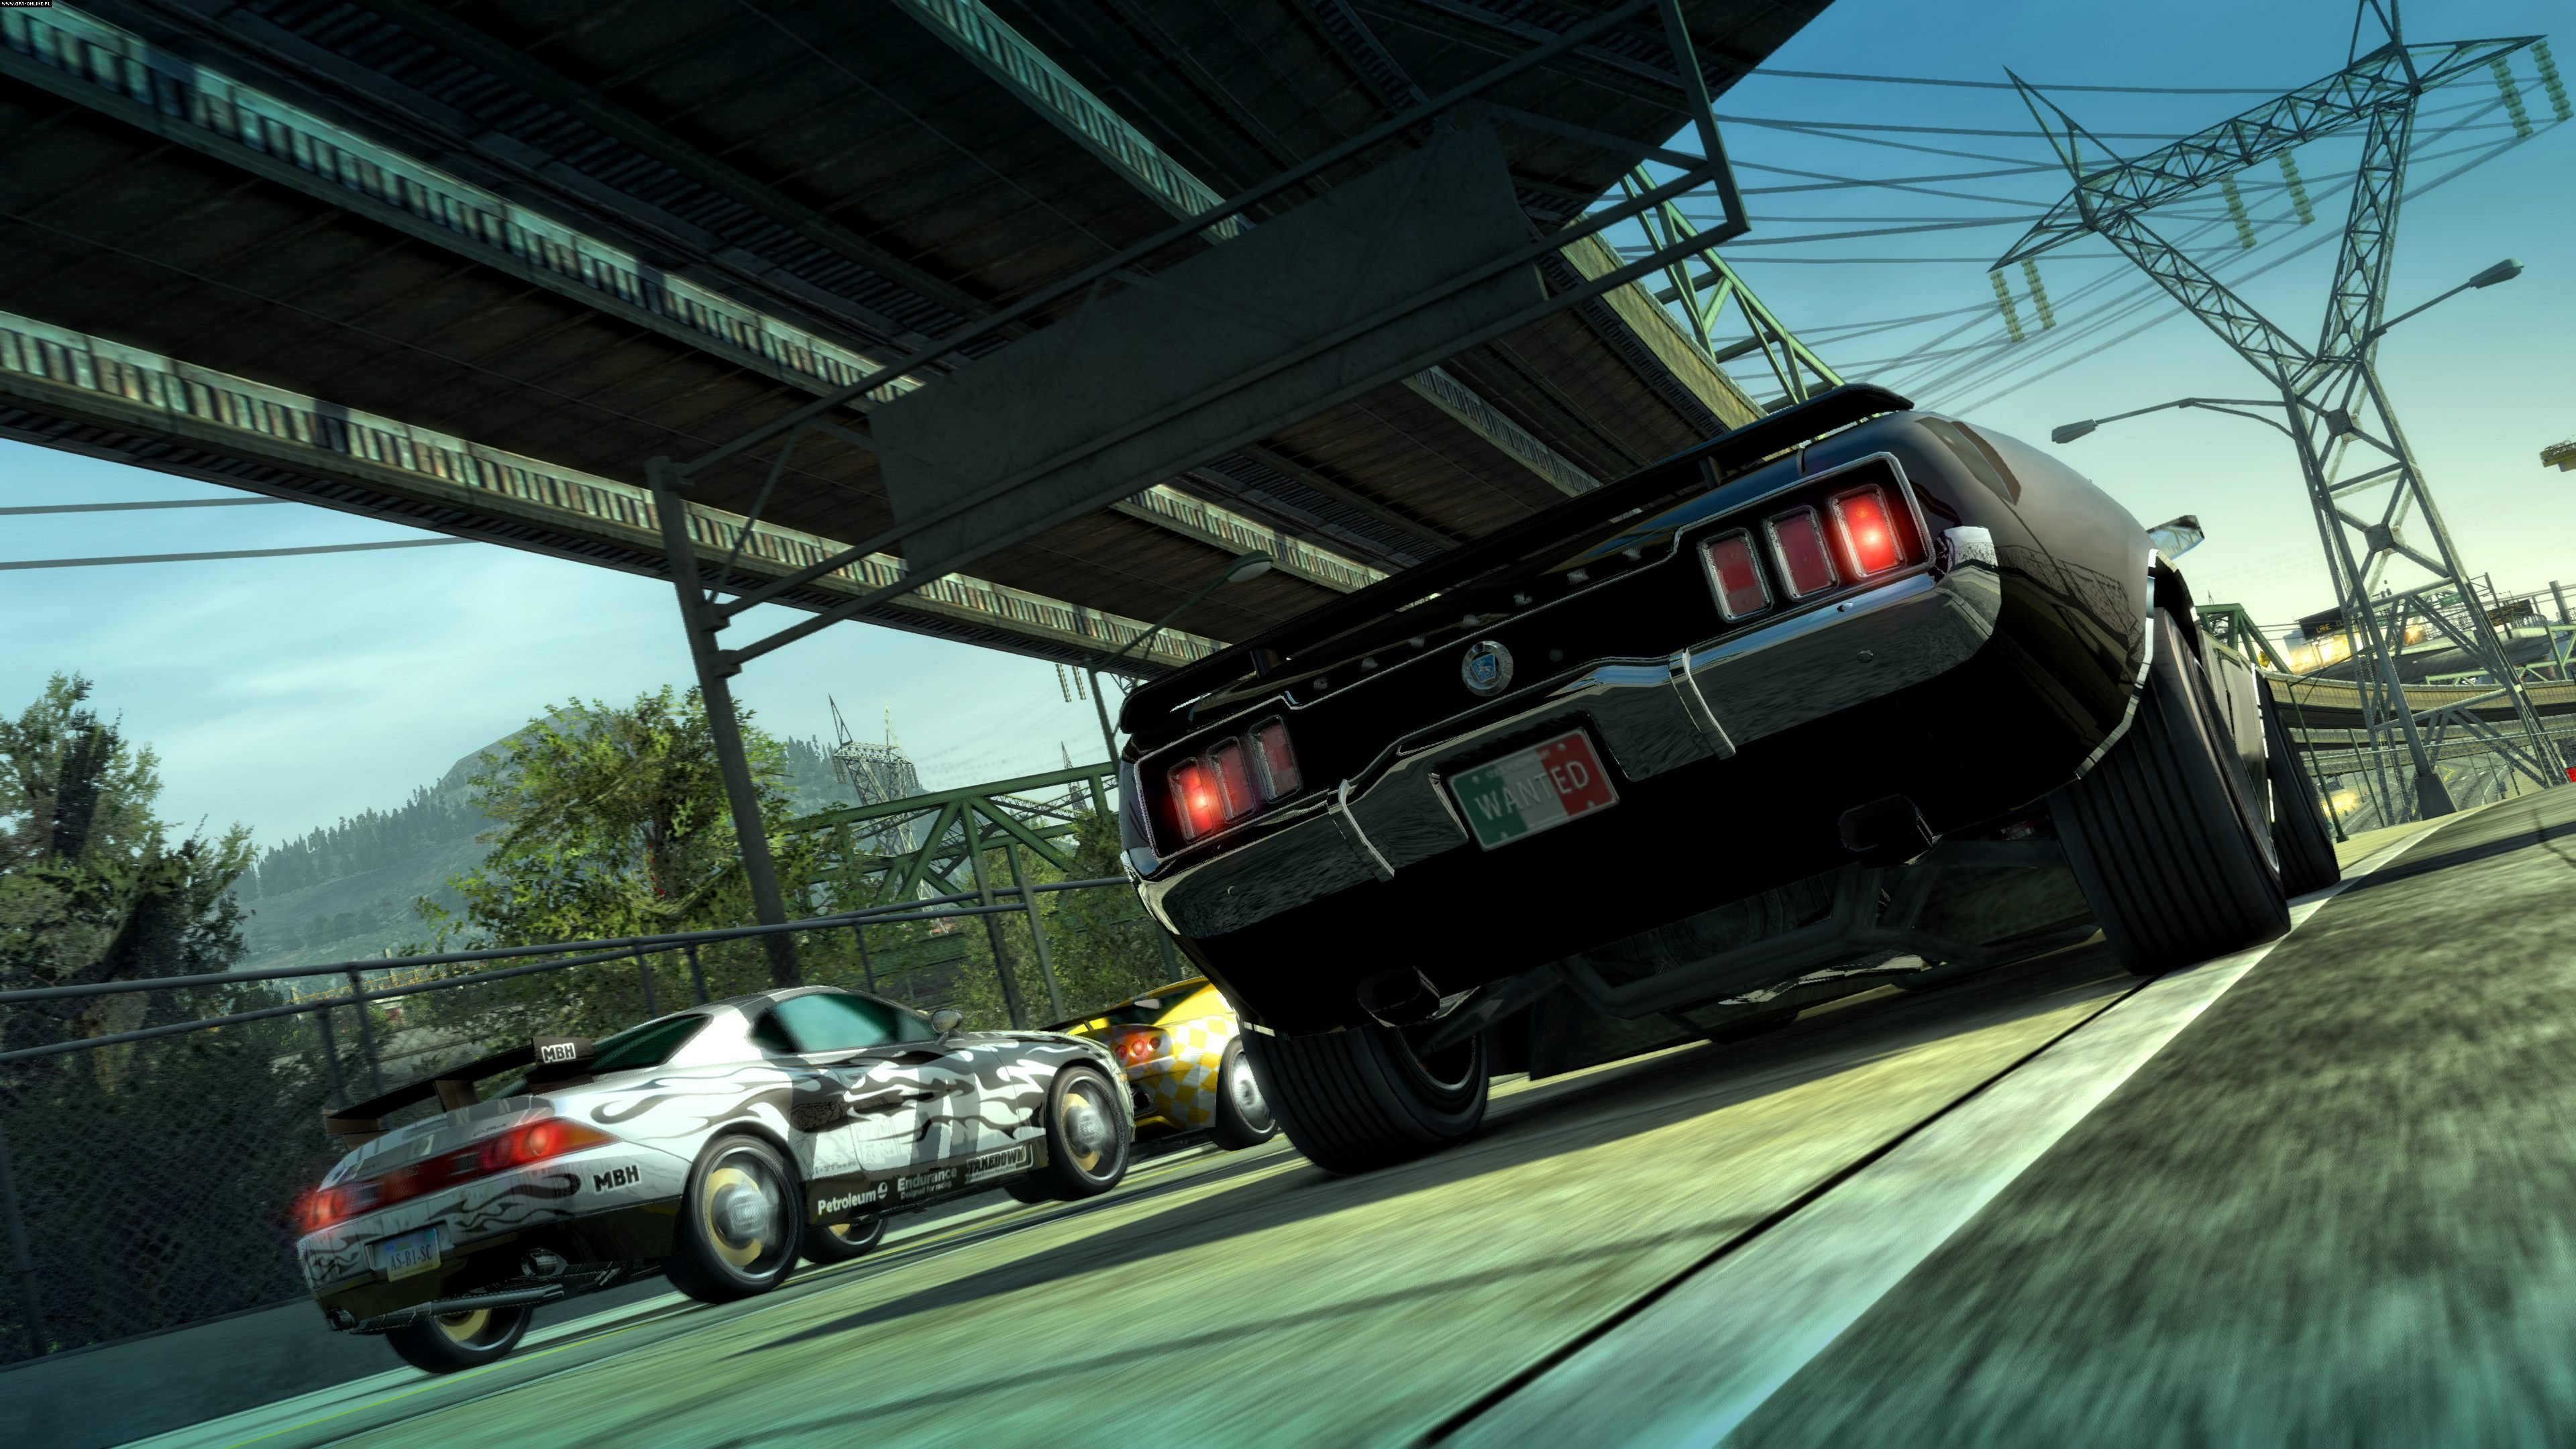 Burnout Paradise Remastered PC, PS4, XONE Gry Screen 7/8, Stellar Entertainment, Electronic Arts Inc.